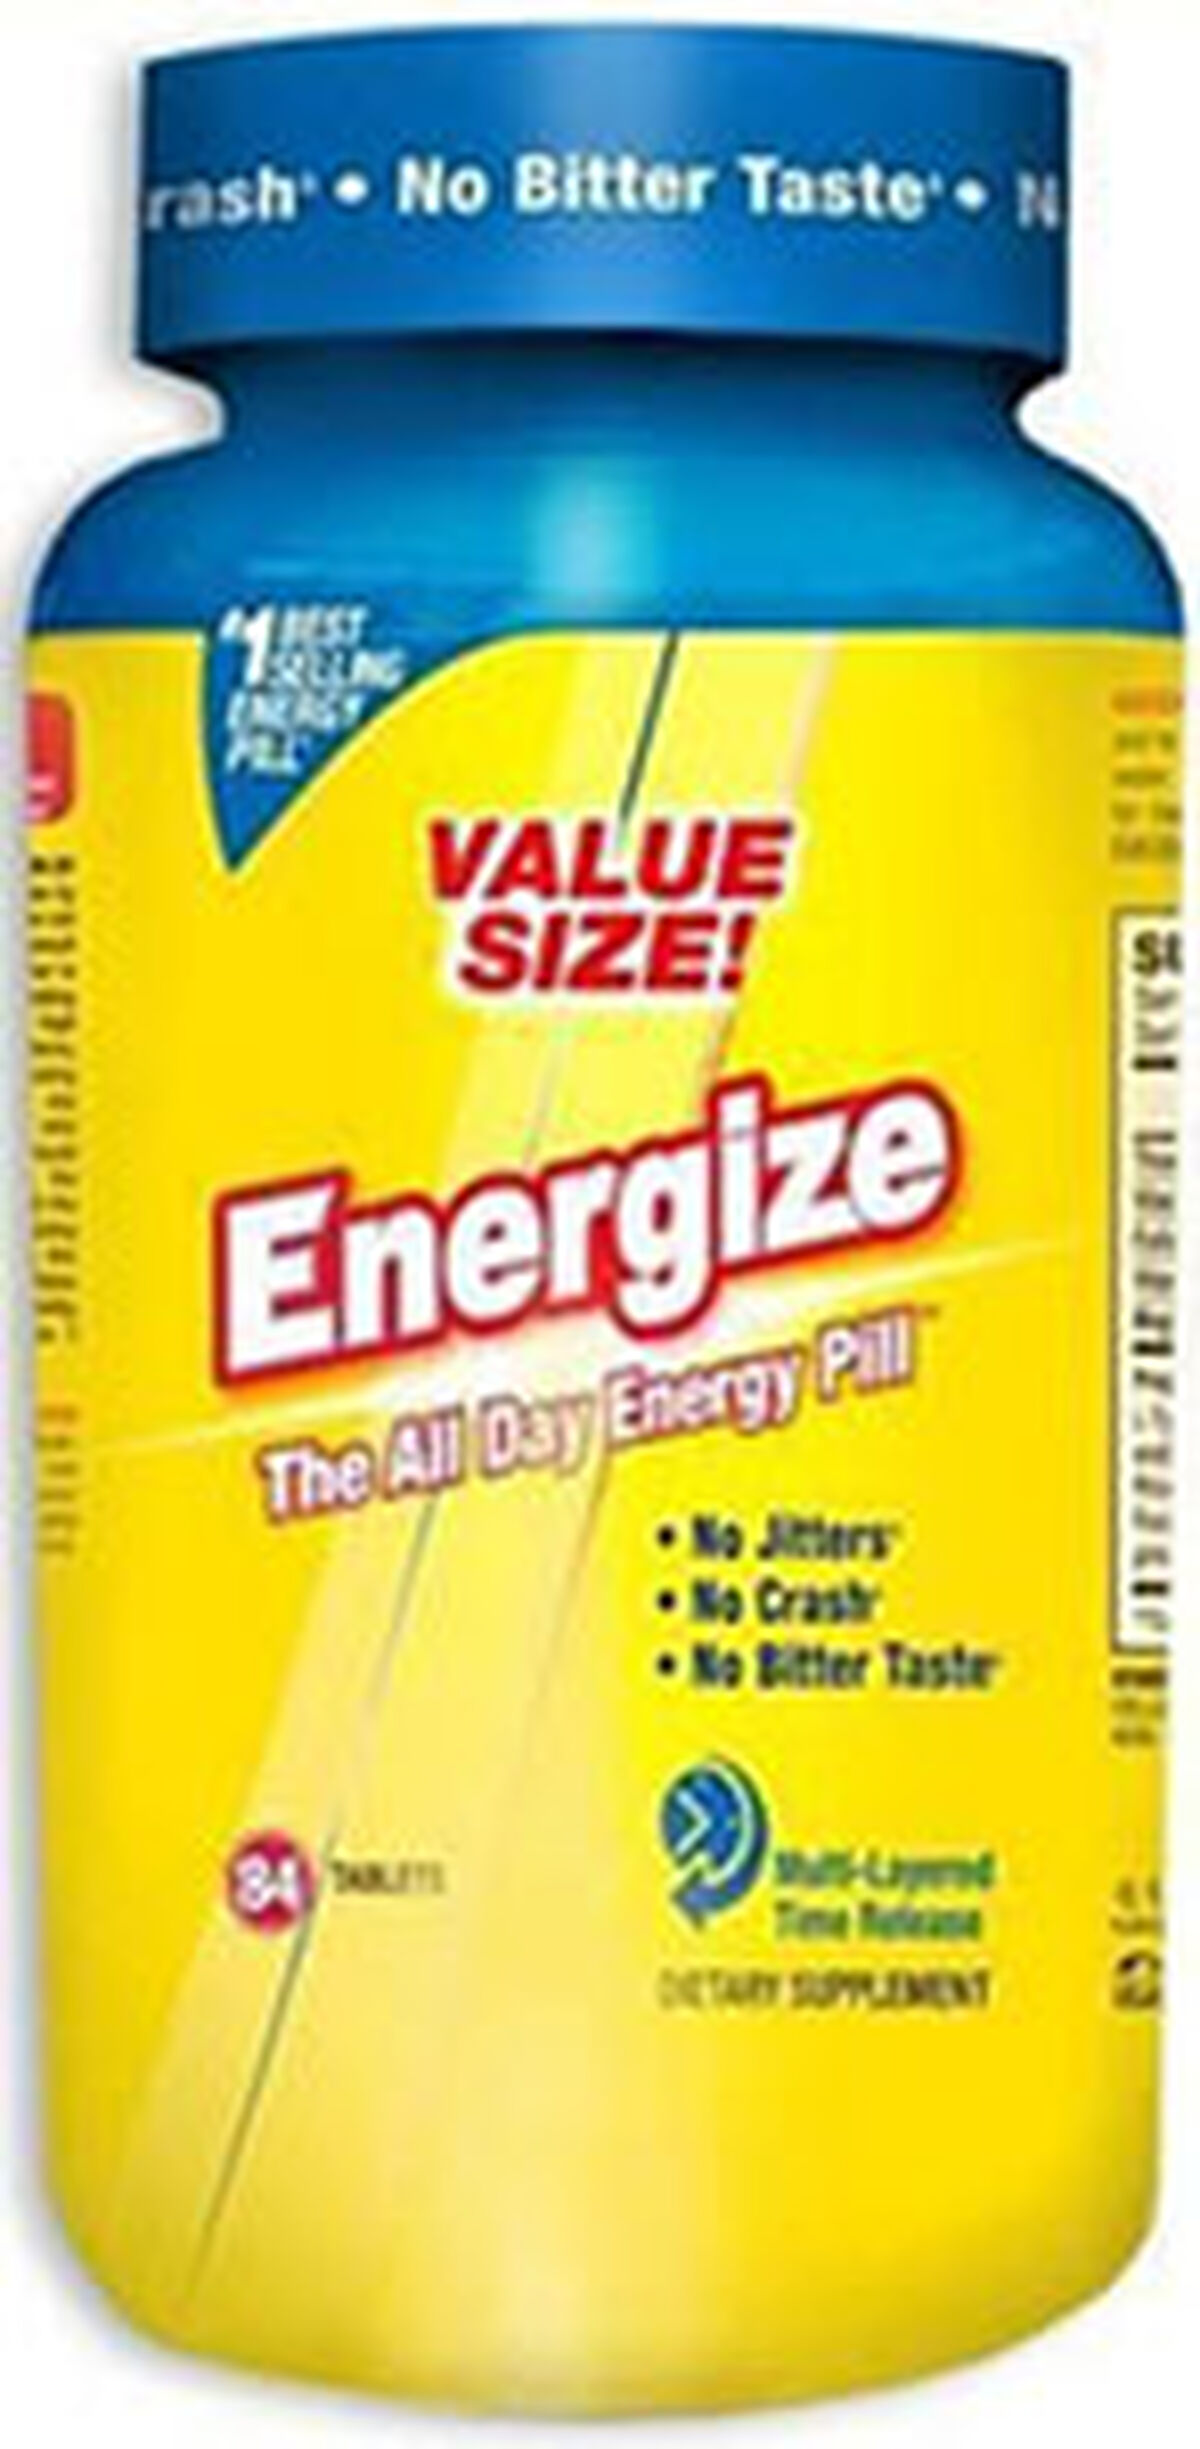 Energize at Vitamin World | Tuggl